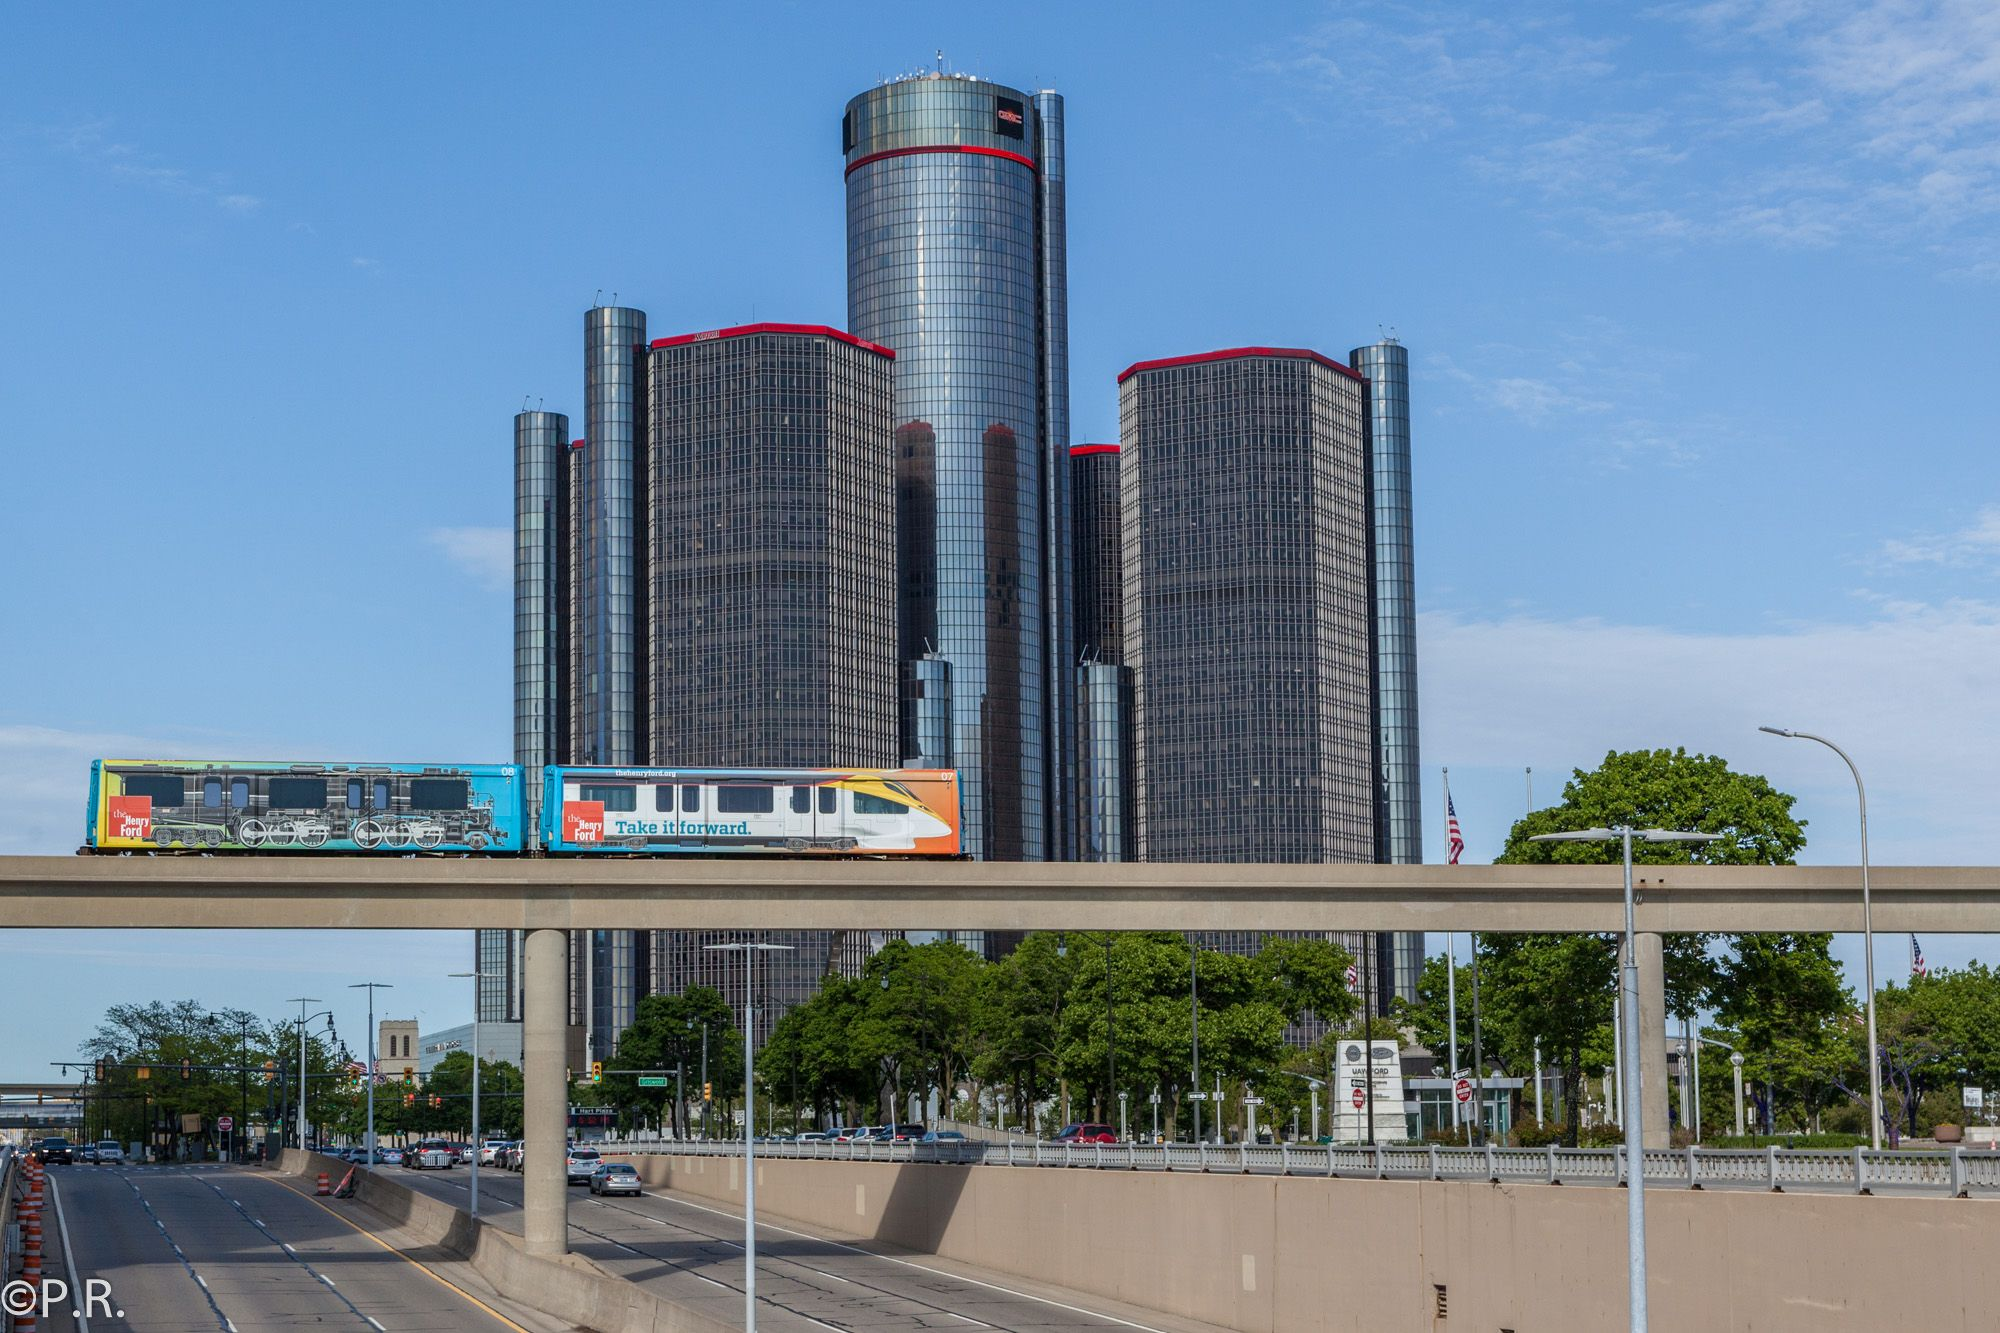 Explore the Motor City by Train with the Detroit People Mover